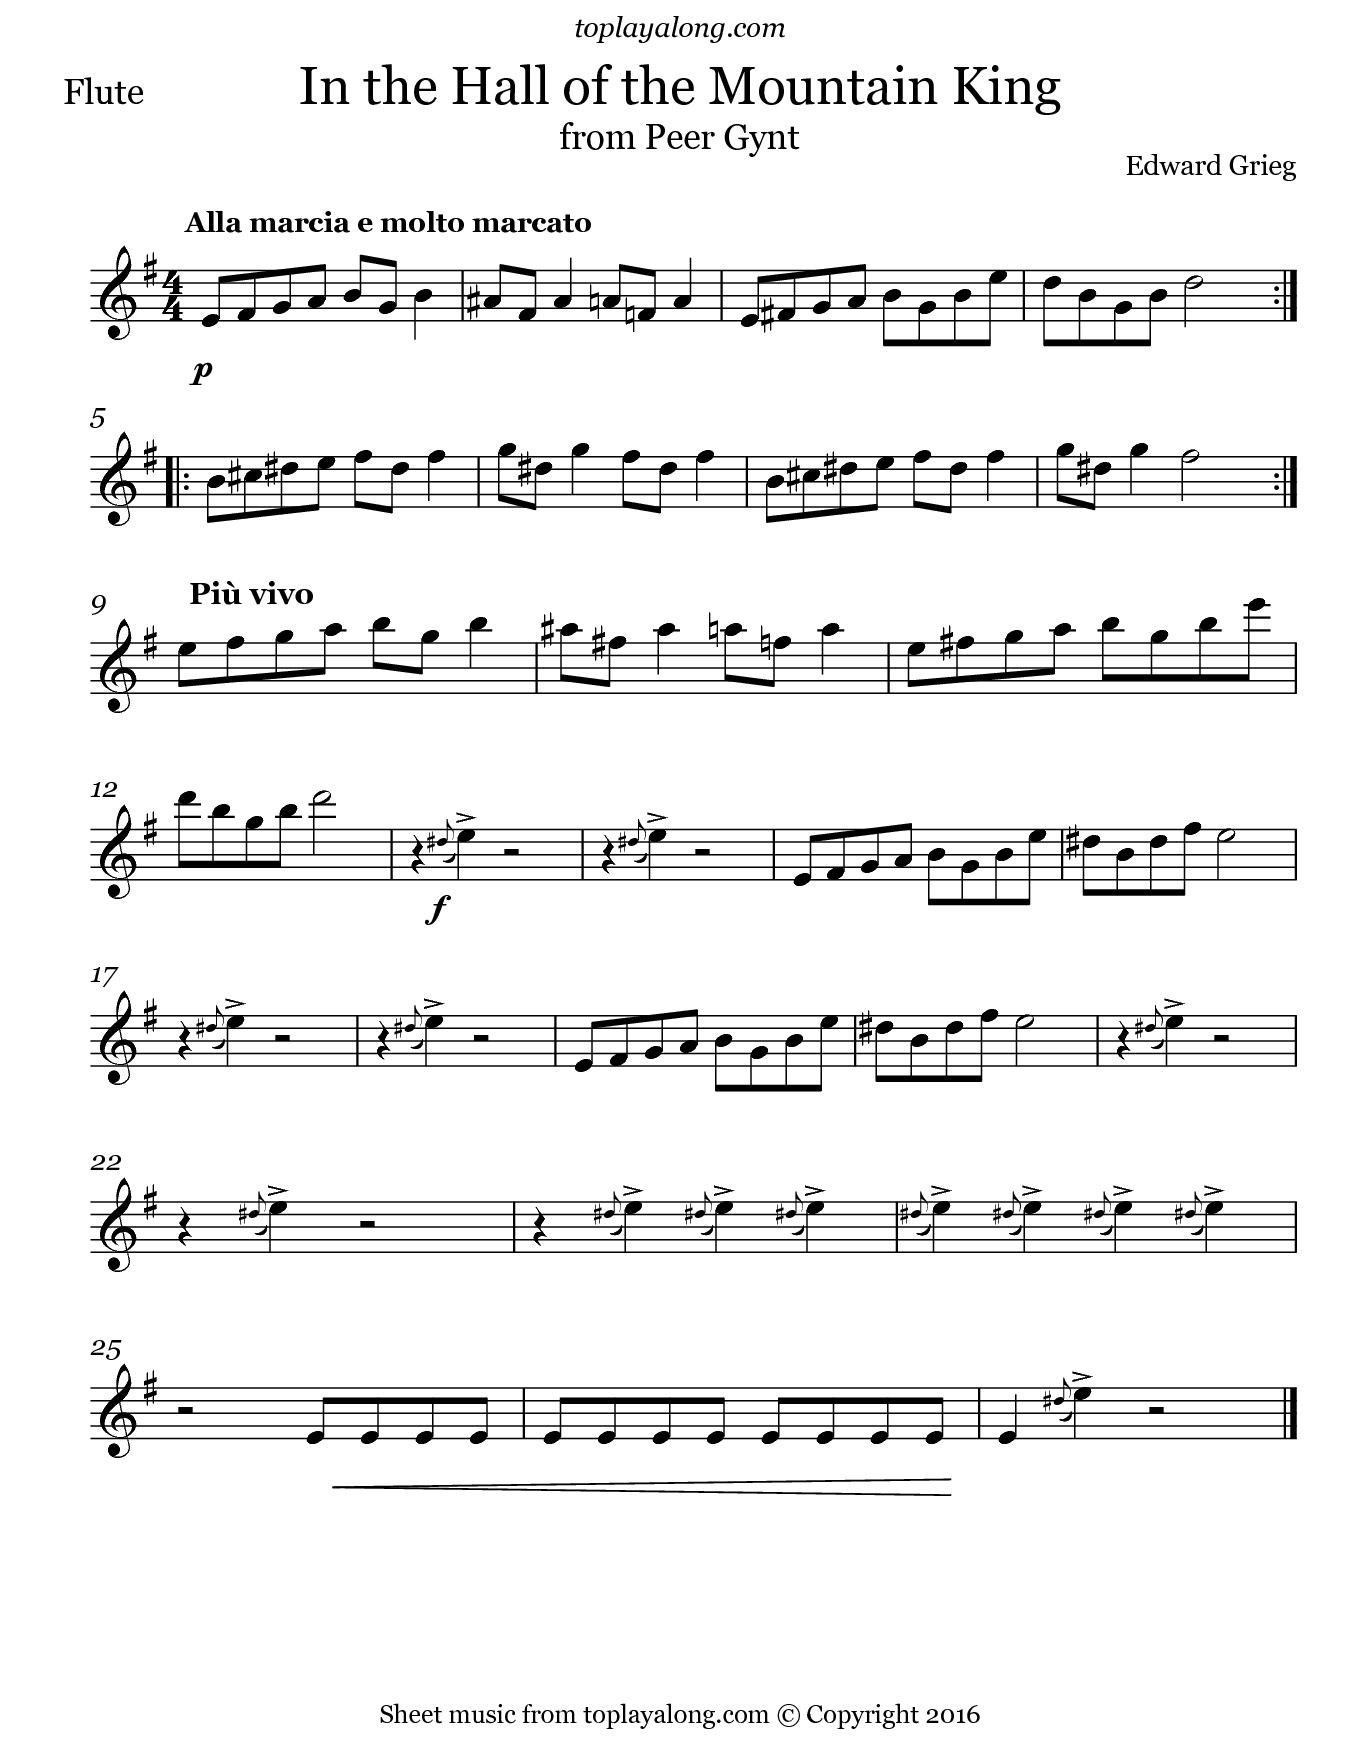 In the Hall of the Mountain King by Grieg. Sheet music for Flute, page 1.